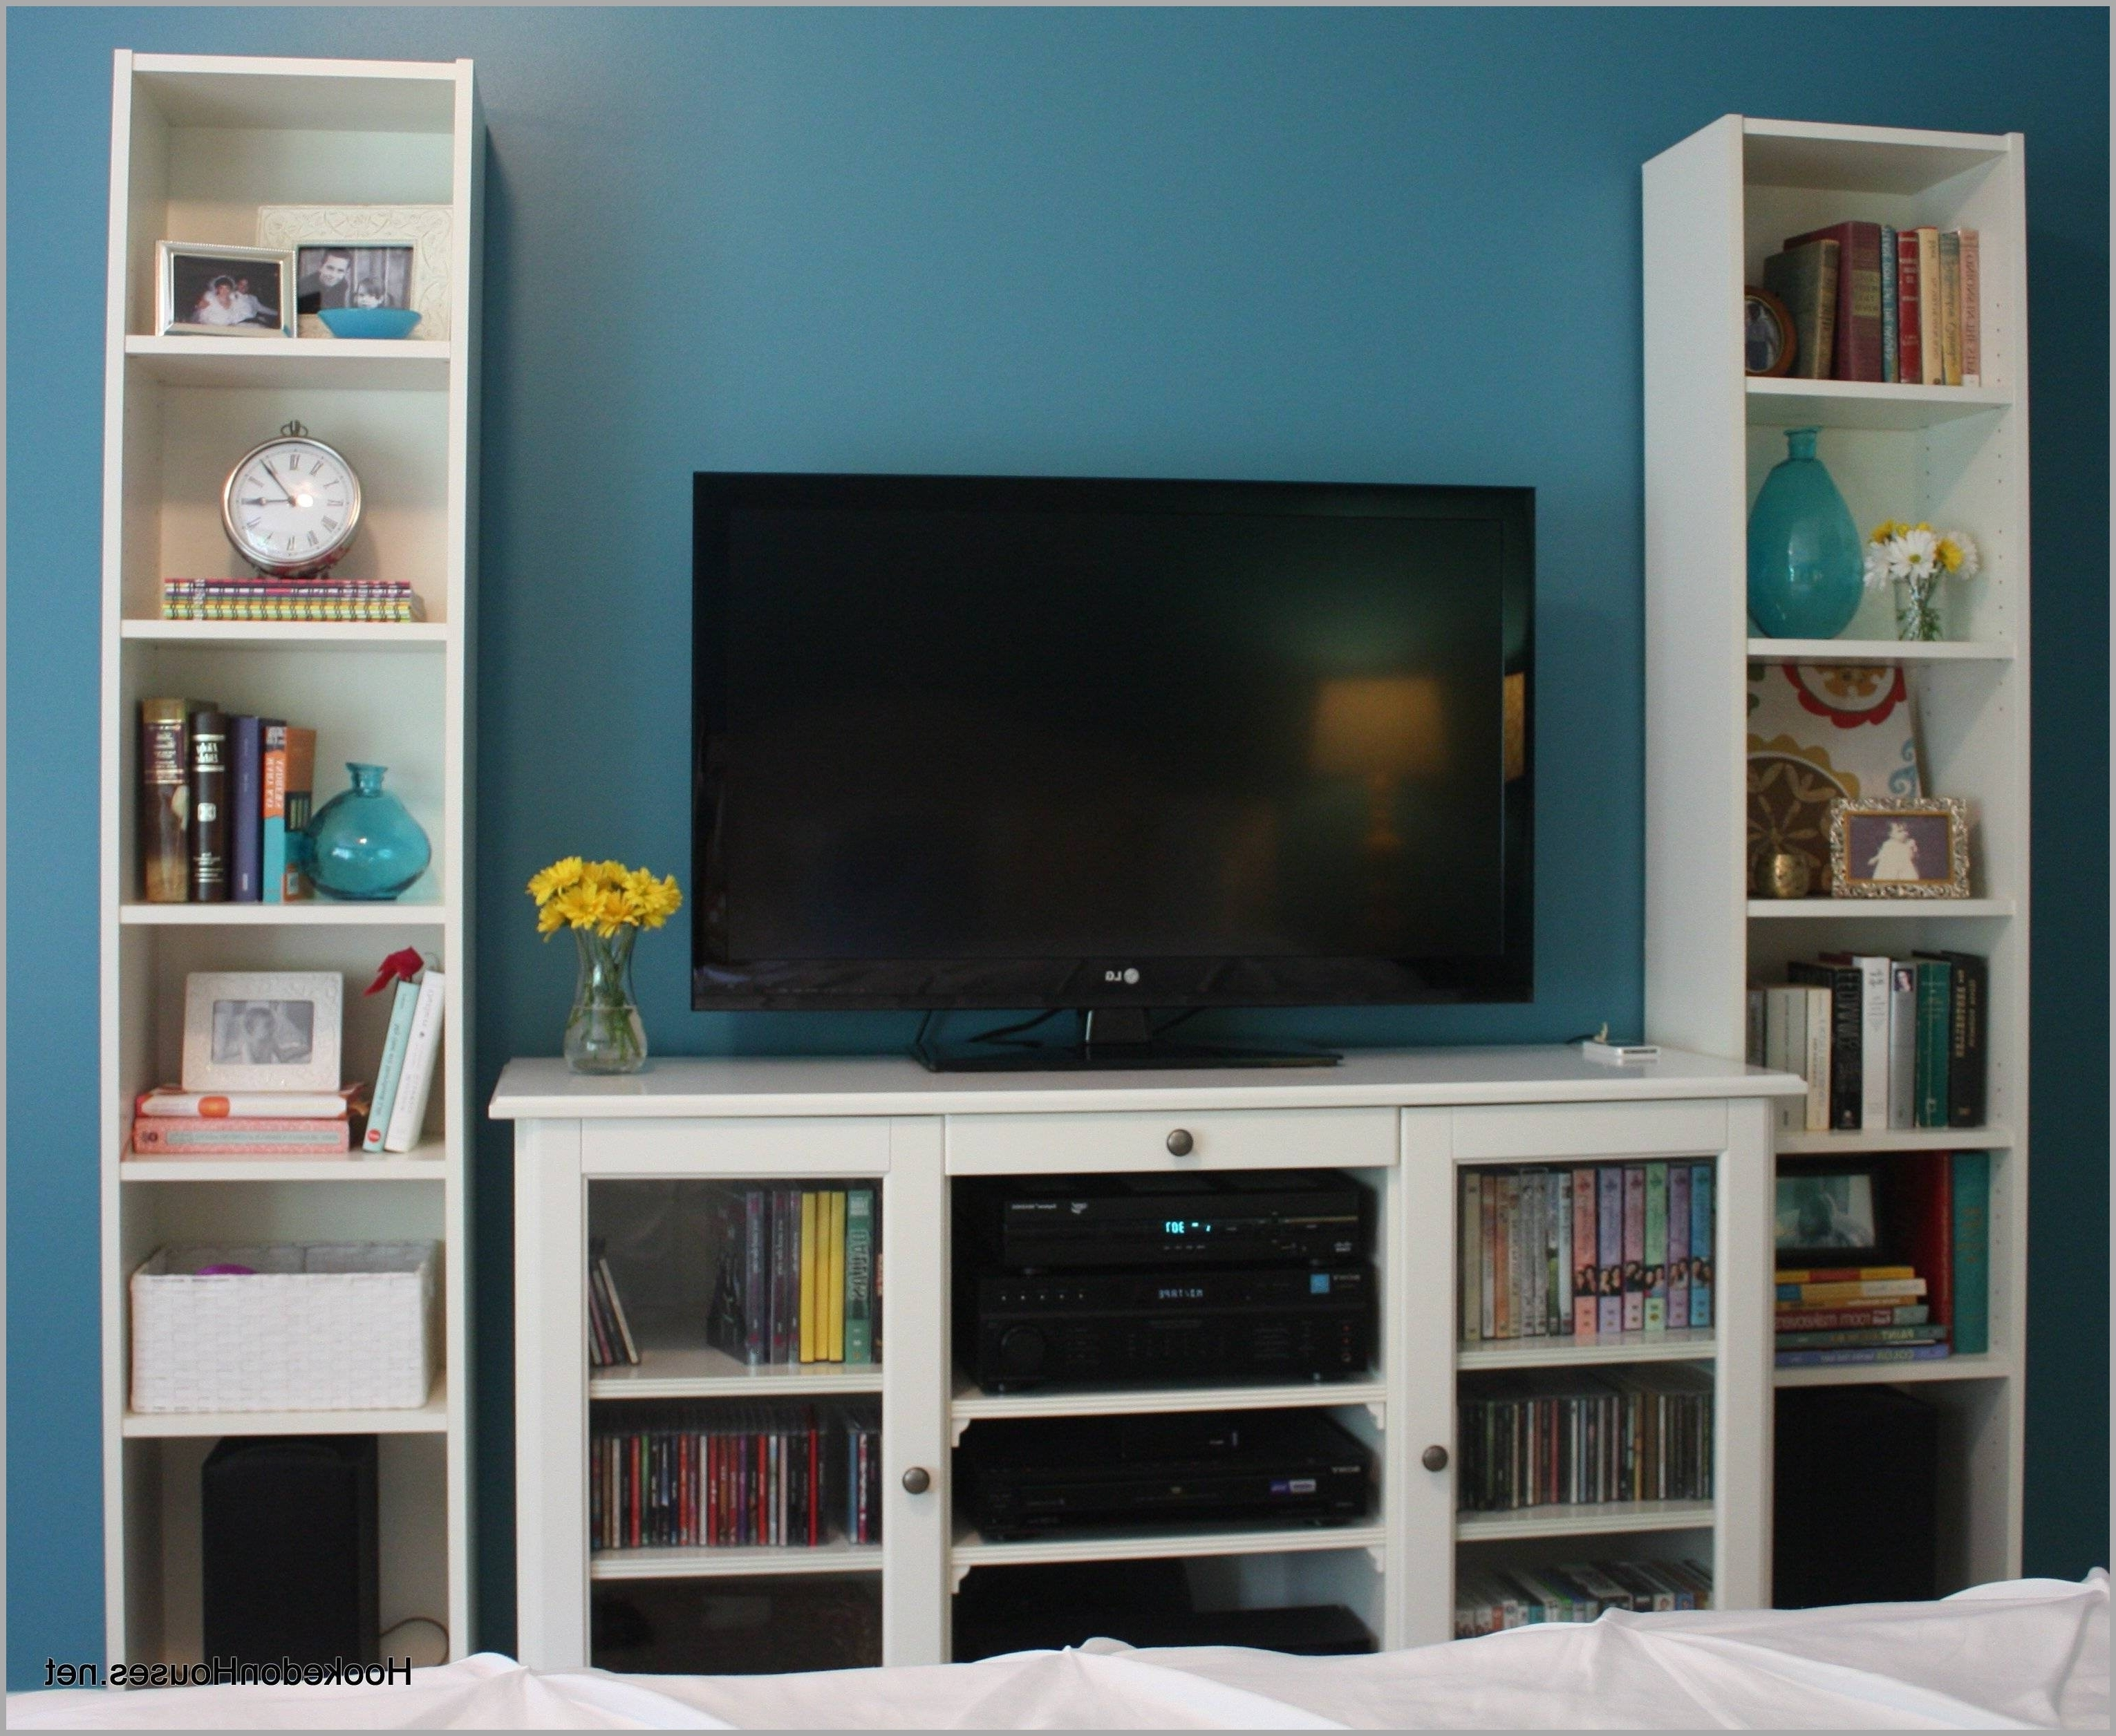 Most Recently Released Book Case Tv With Regard To Affordable Tv Stand Bookcase Combo Ideas 305633 – Tv Stands Ideas (View 10 of 15)